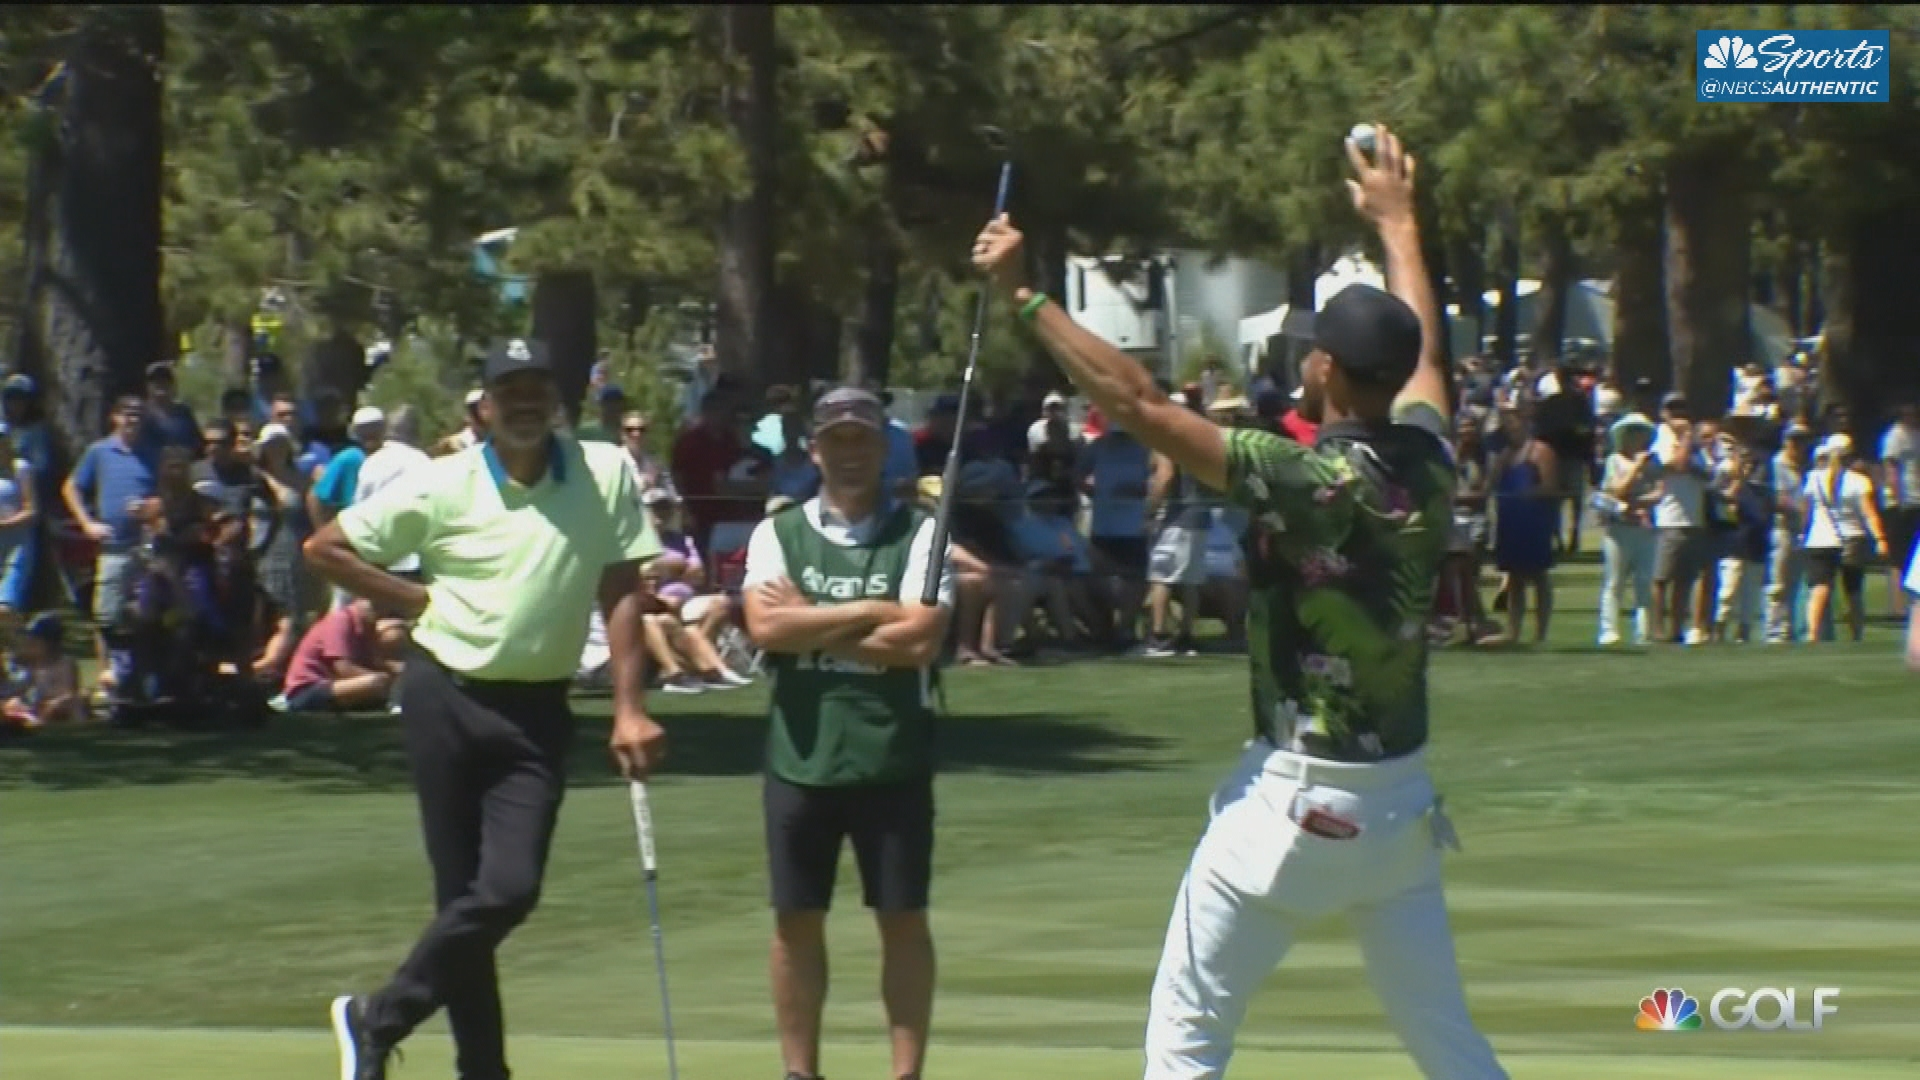 Curry vs Curry at the American Century Championship